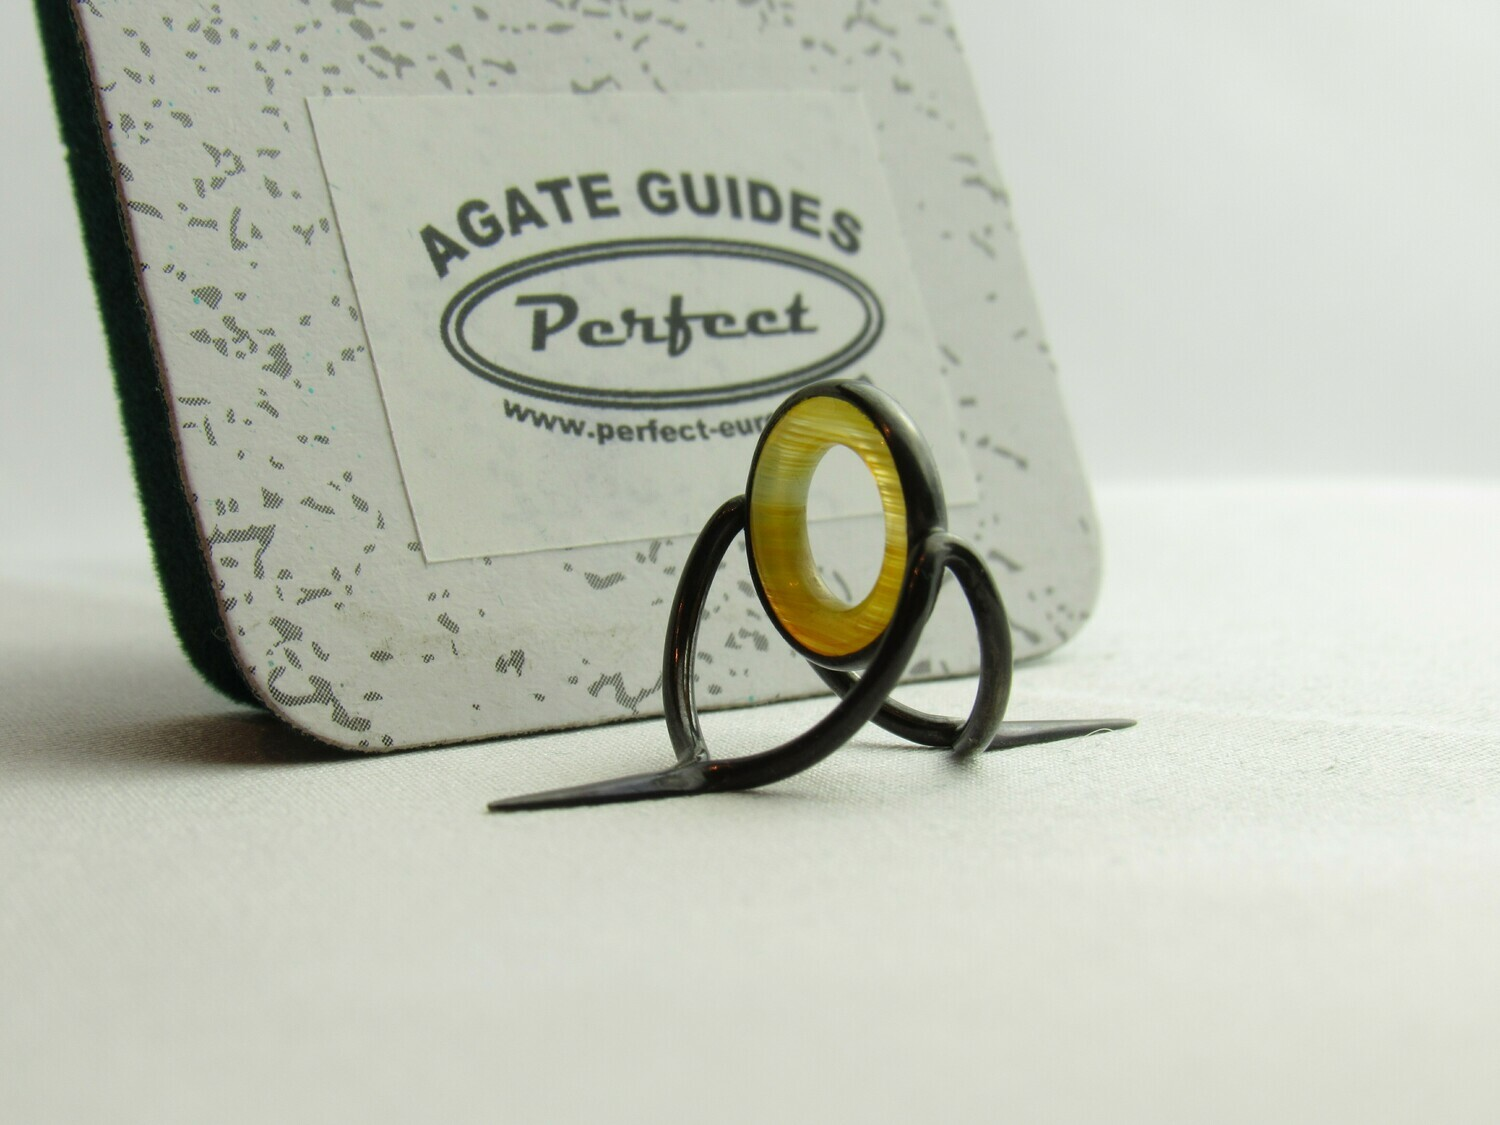 Agate Perfect Stripping Guide Ring 10mm gelb / yellow banded